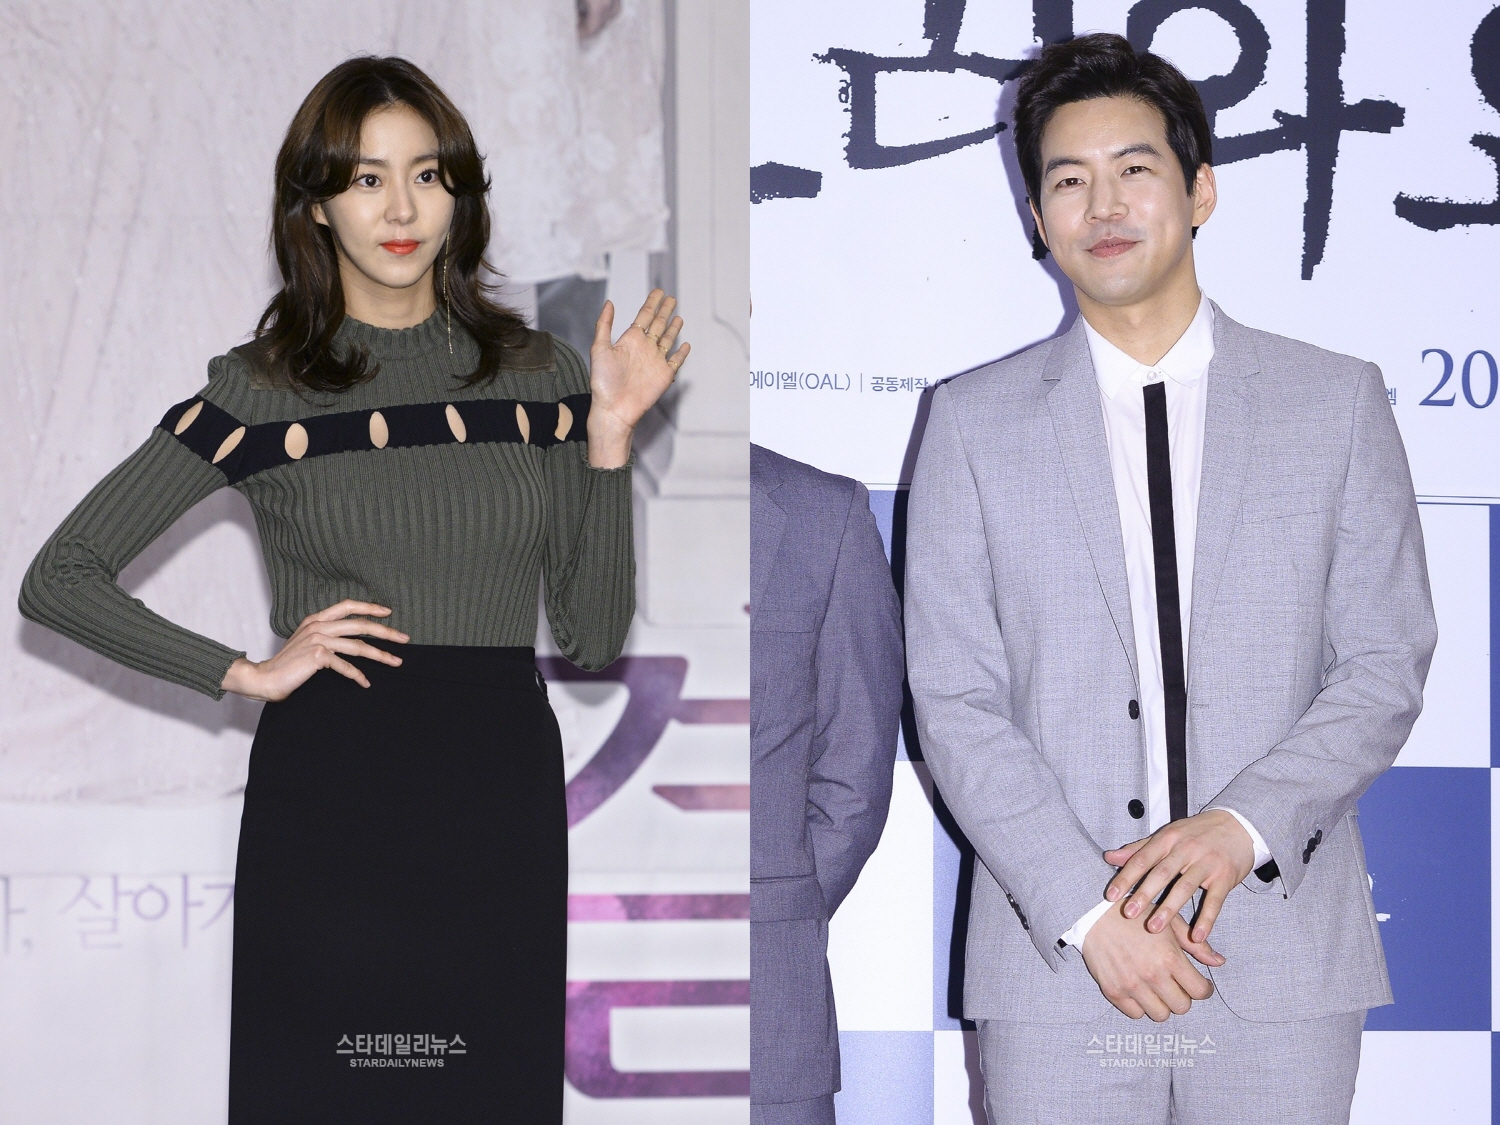 http://0.soompi.io/wp-content/uploads/2016/05/03232929/uee-and-lee-sang-yoon-star-daily-news.jpg